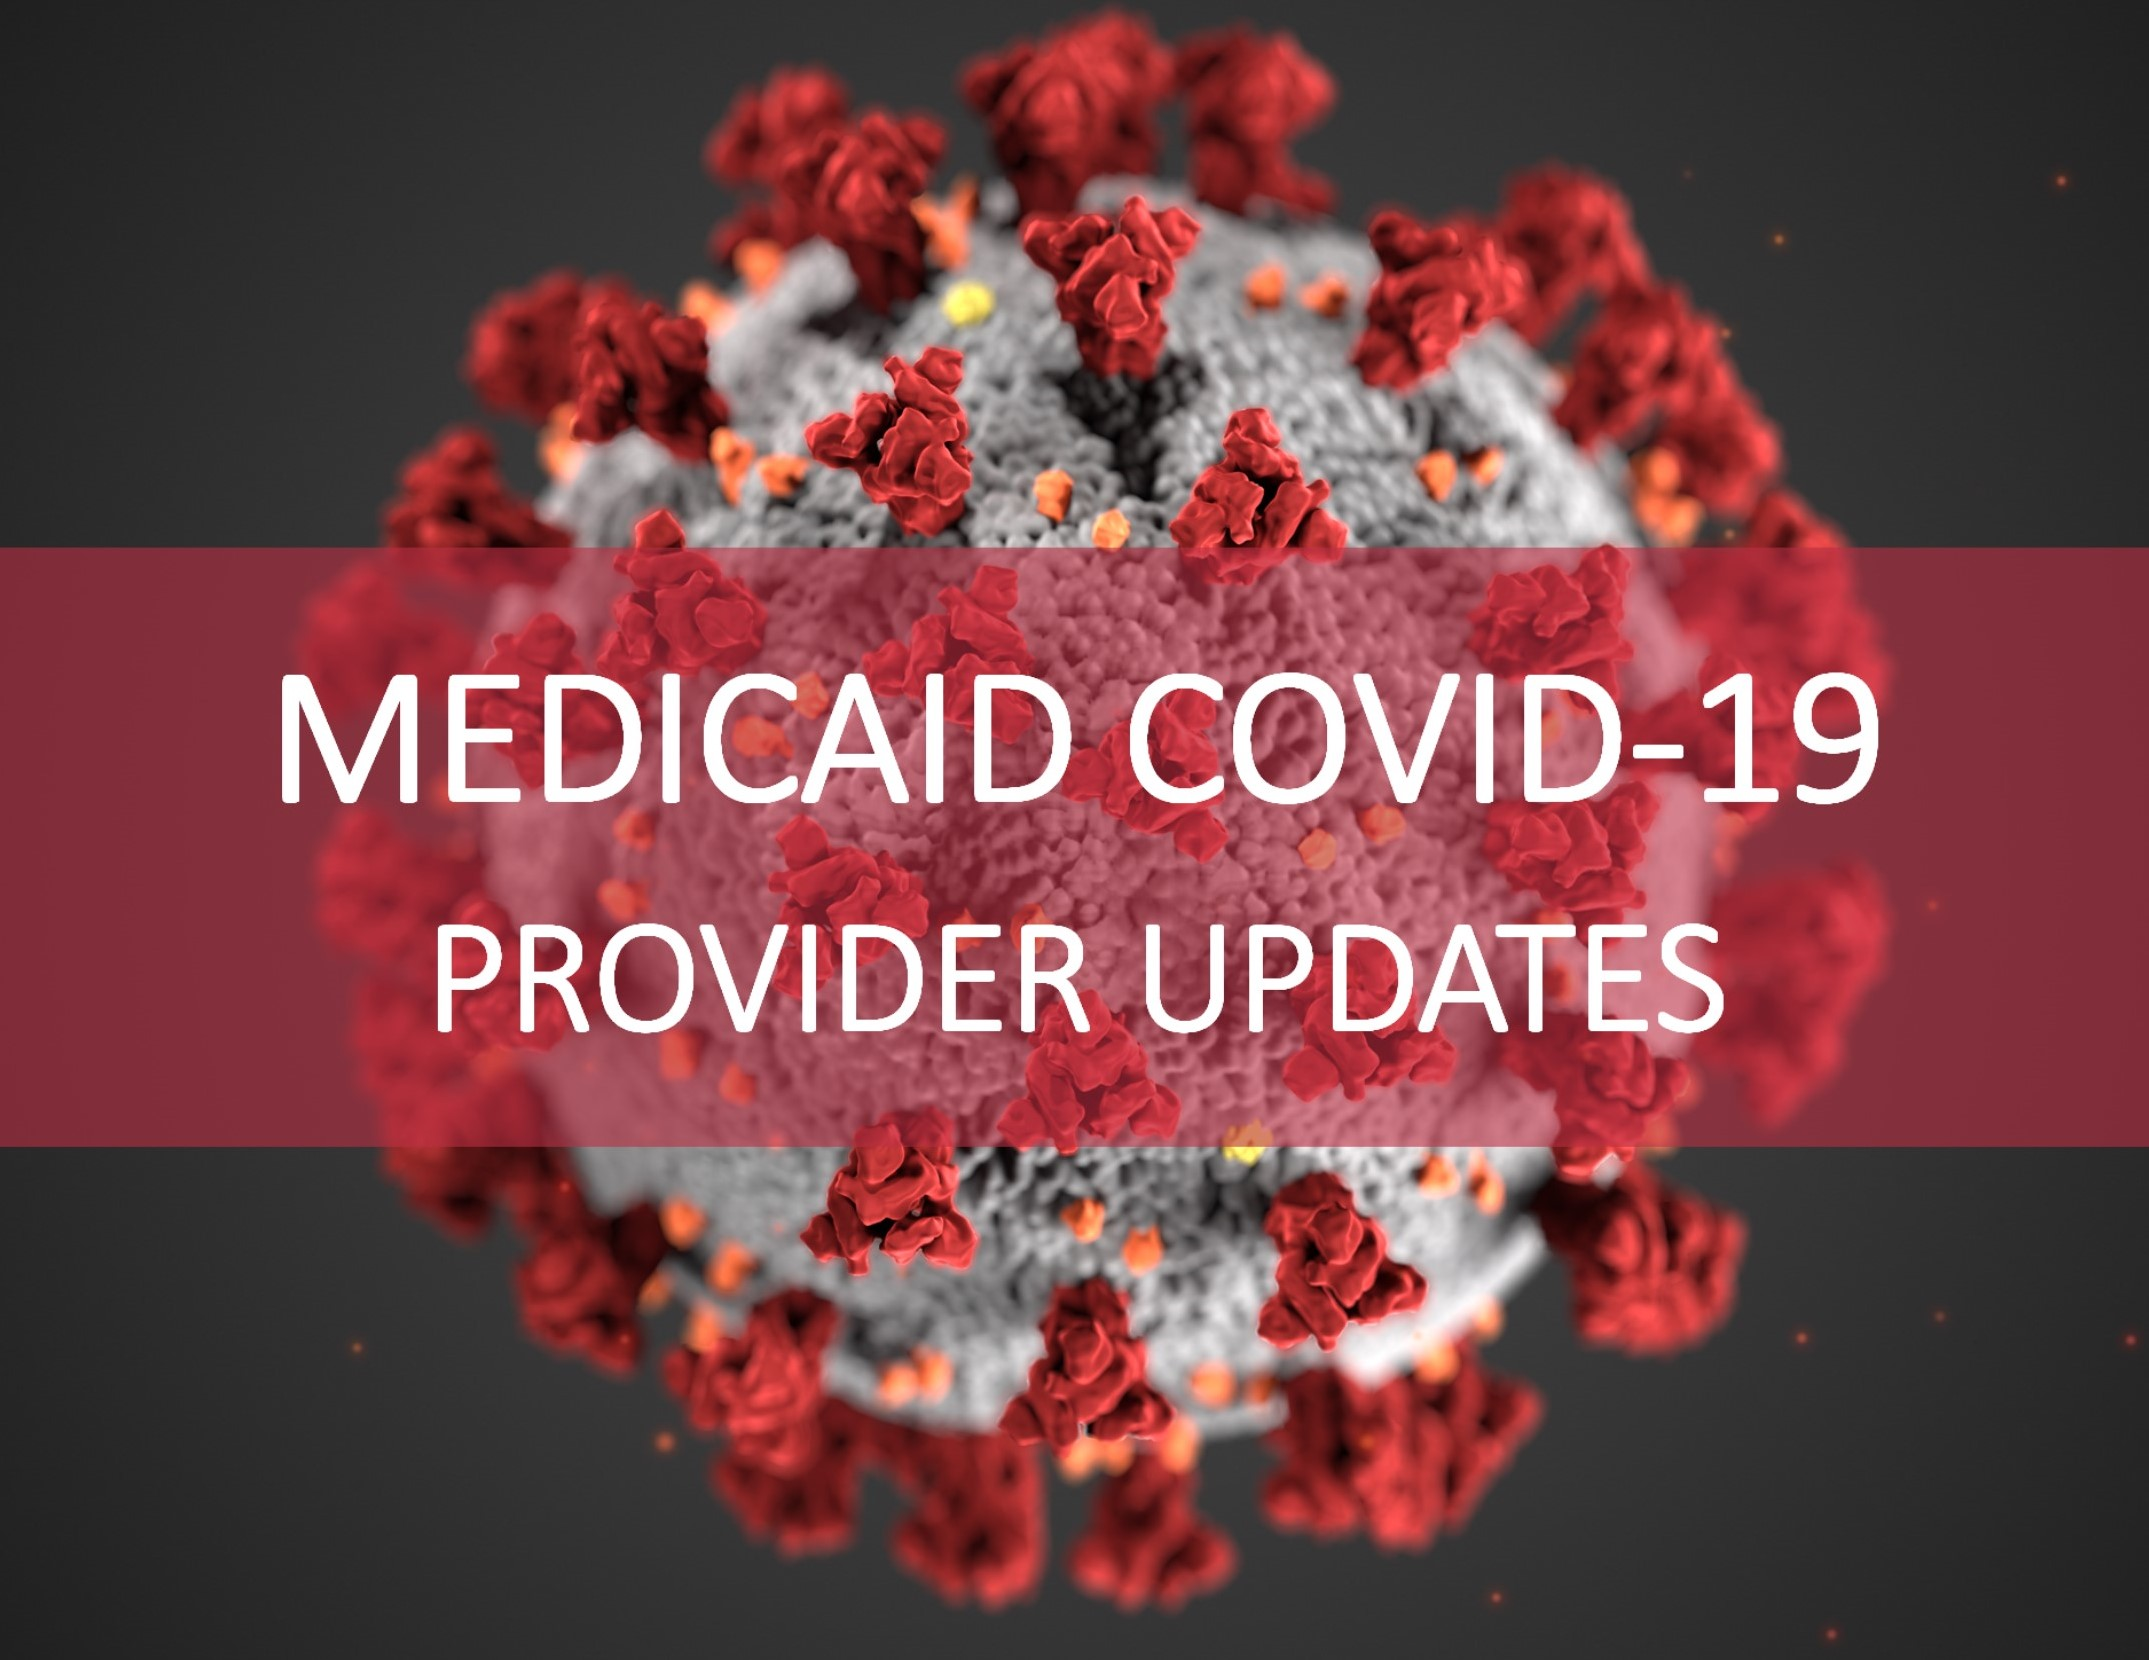 Medicaid COVID-19 Provider Updates crop for home page.jpg